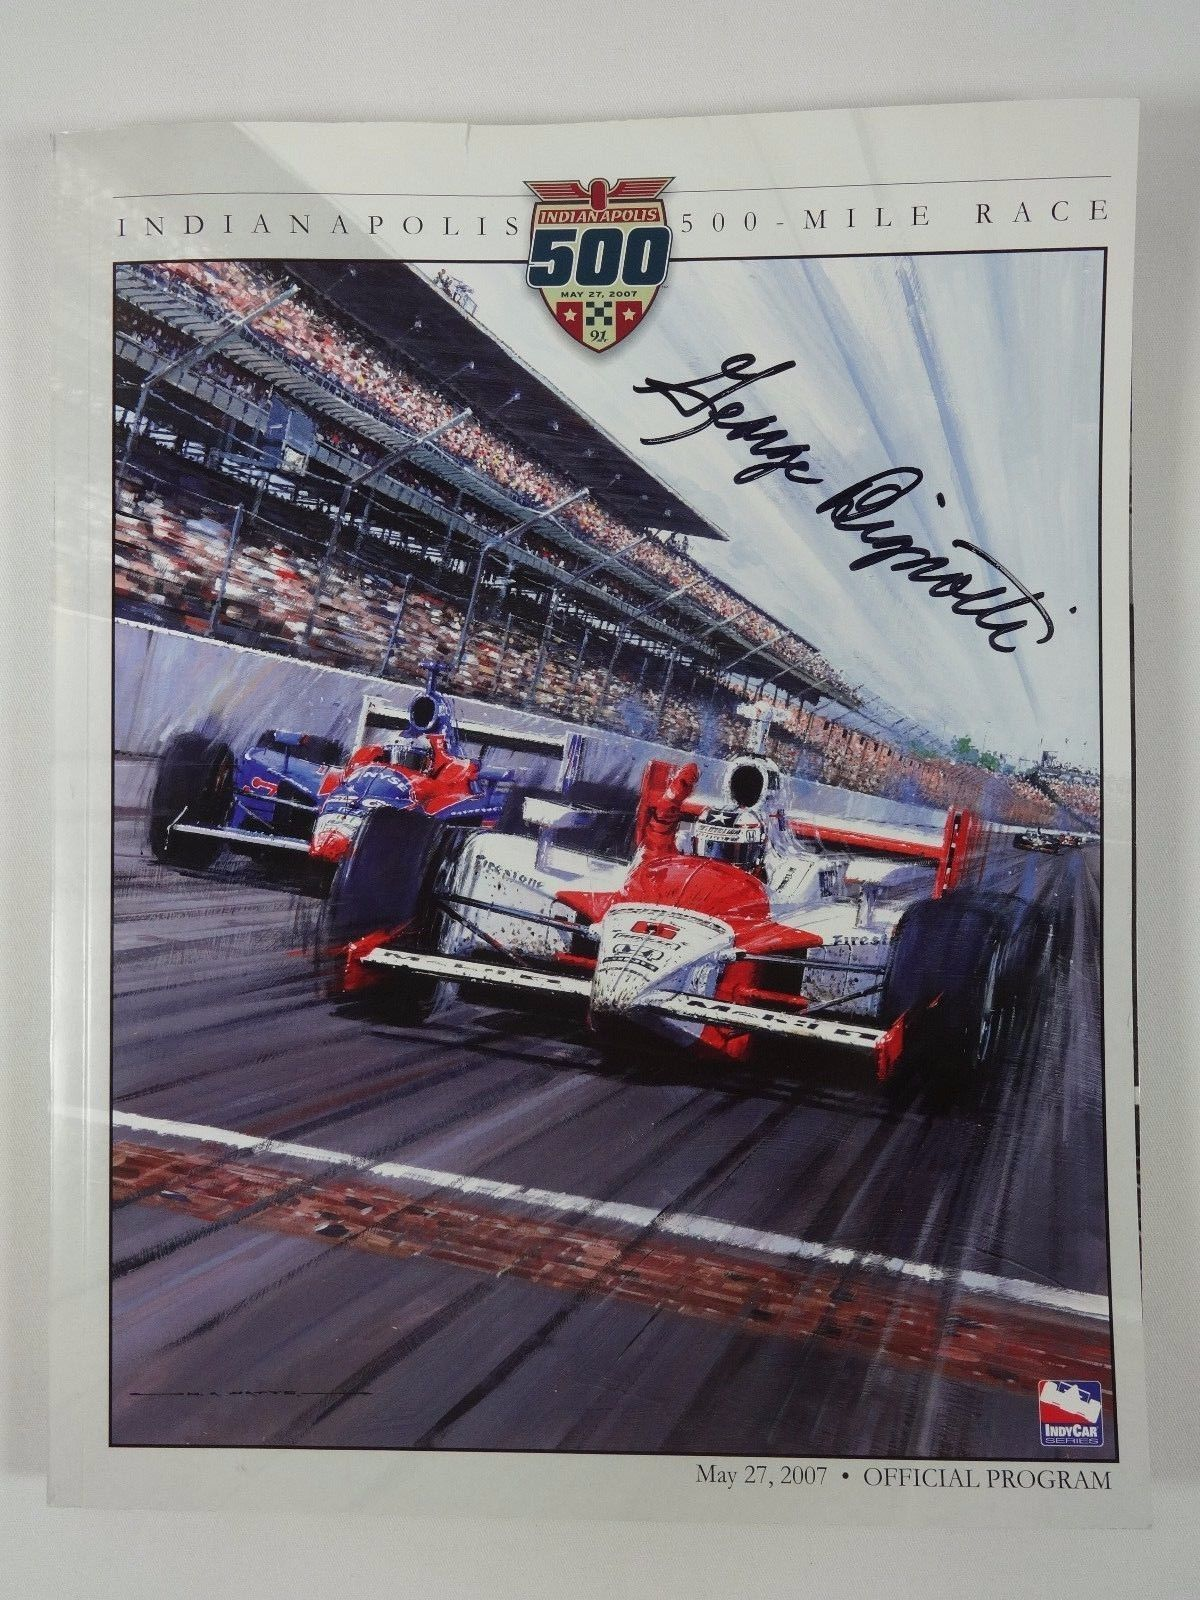 George Bignotti Autographed on Cover 2007 Indianapolis 500 Official Program  (eBay Link) a9306ac06